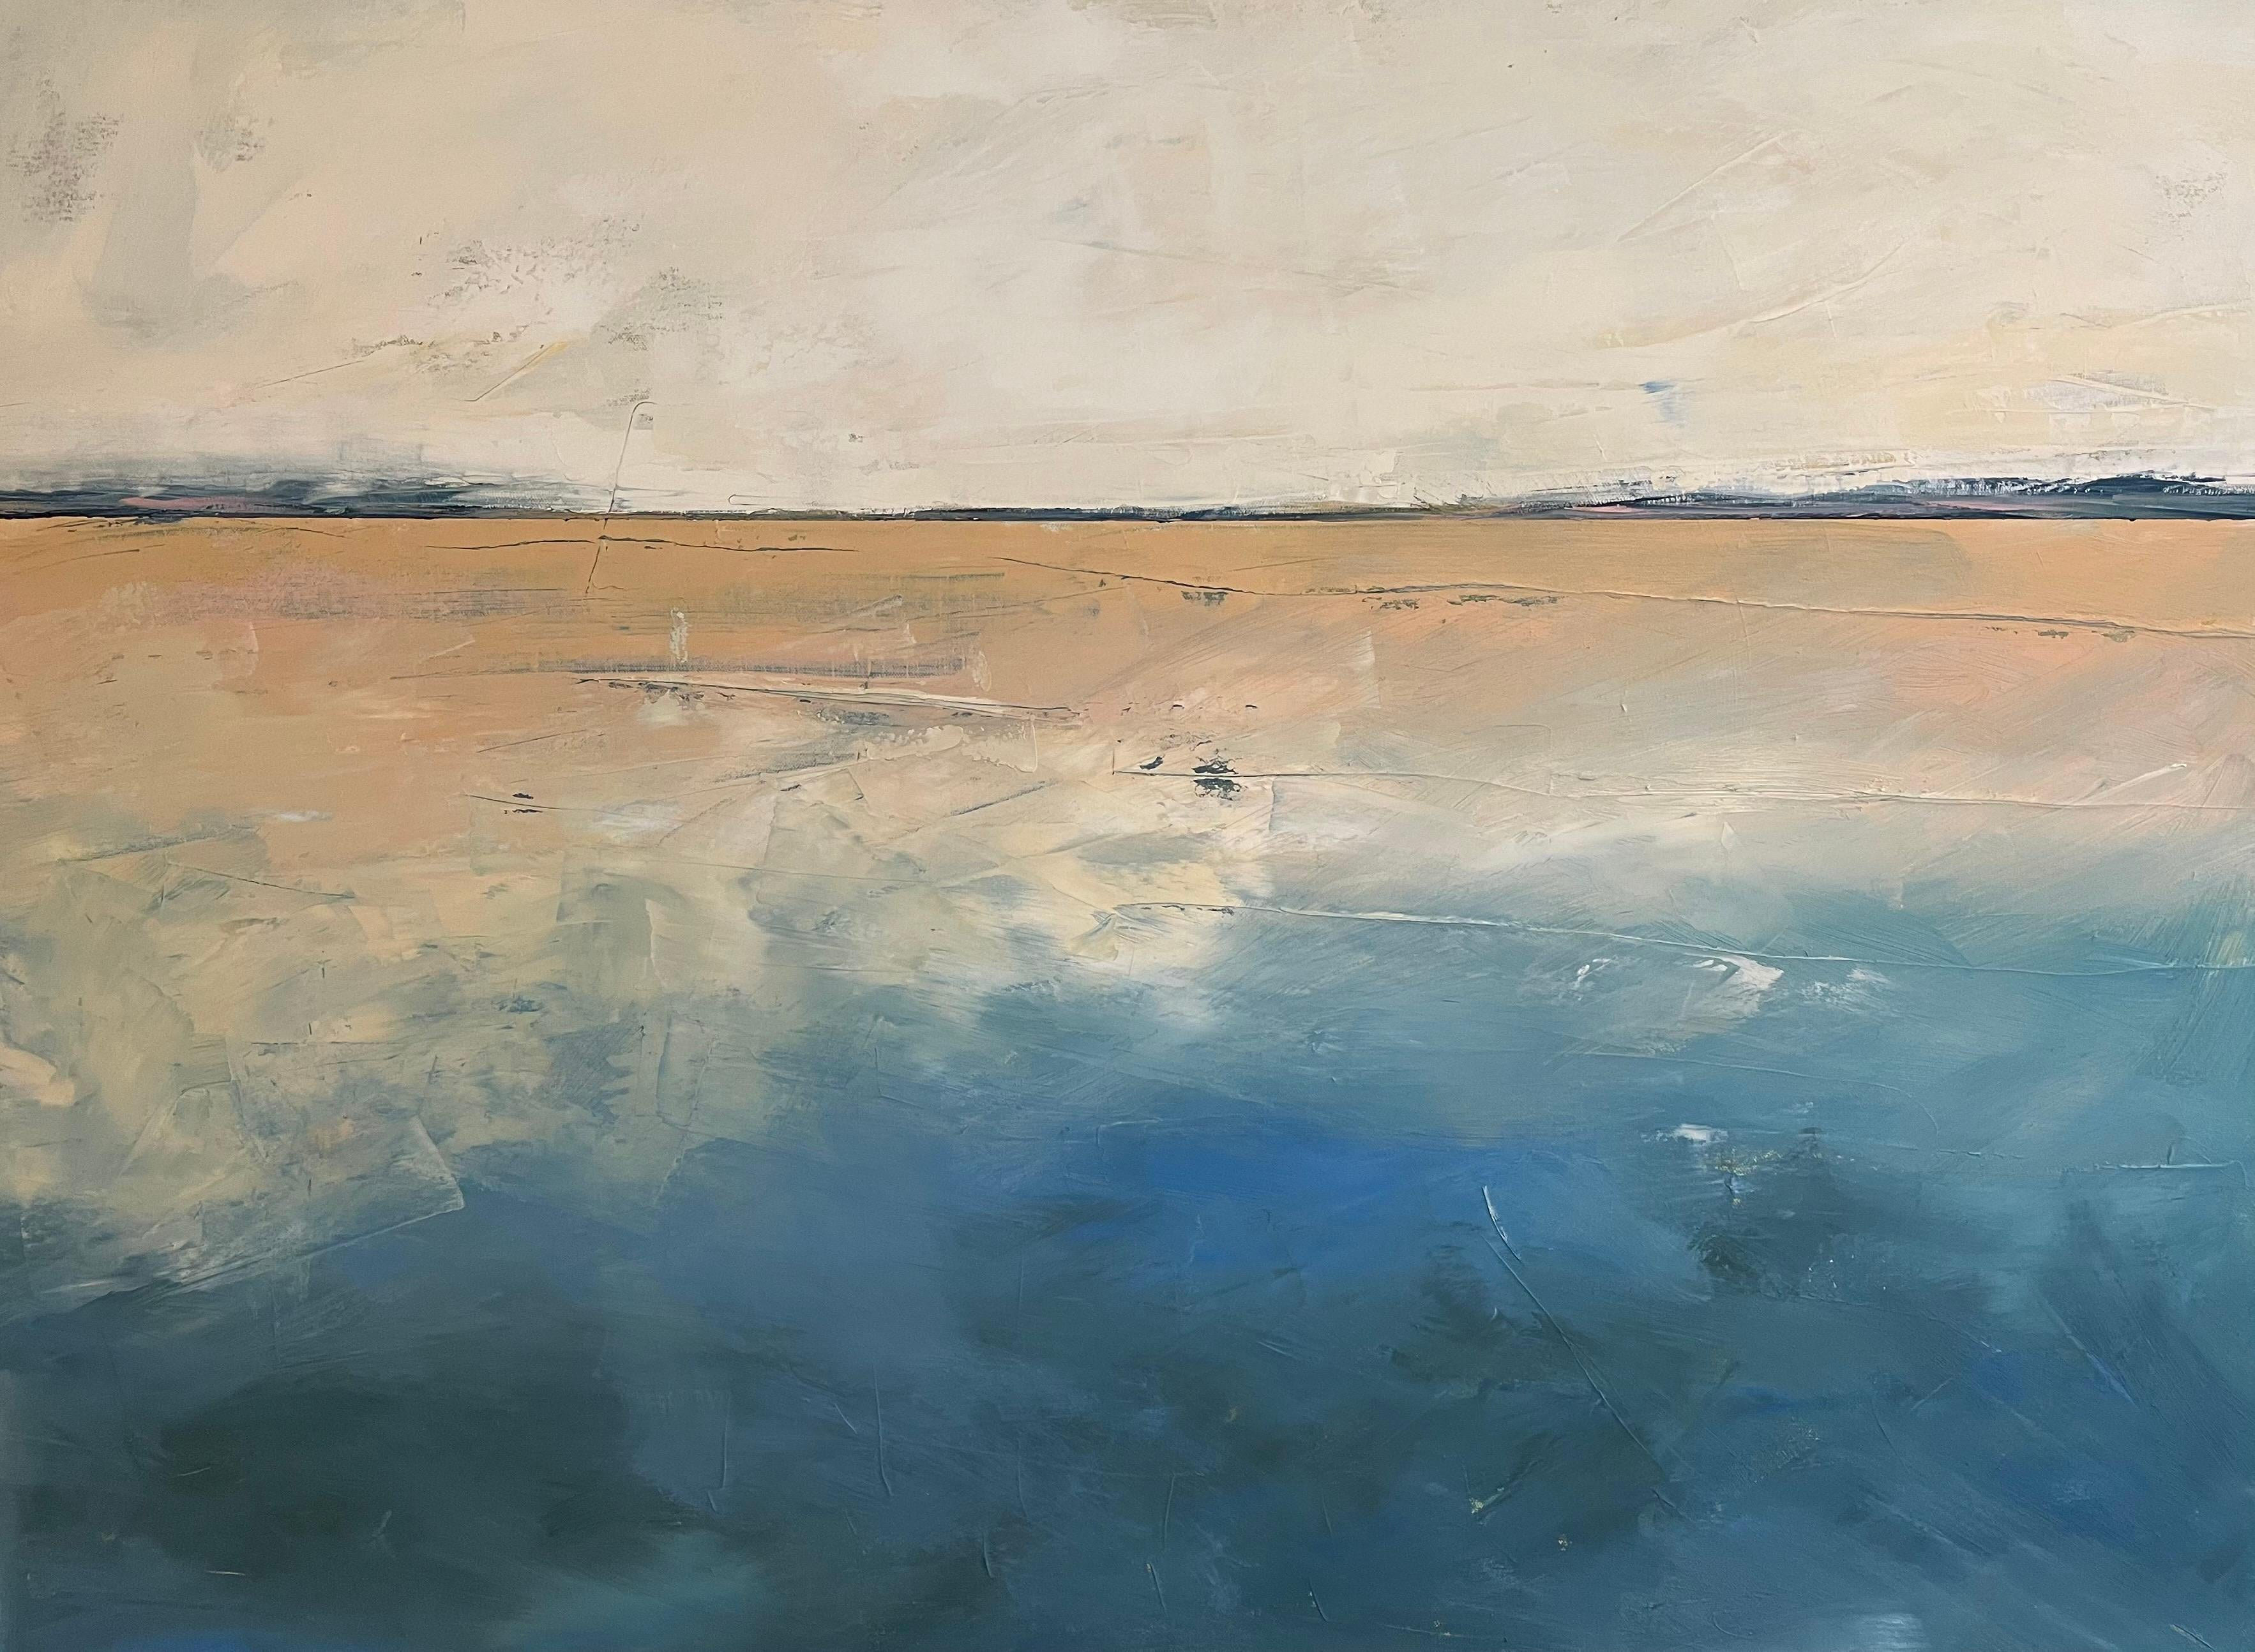 The Perfect Day, Waterscape, Abstract Landscape, Oil, Linen, Pink, White, Beach